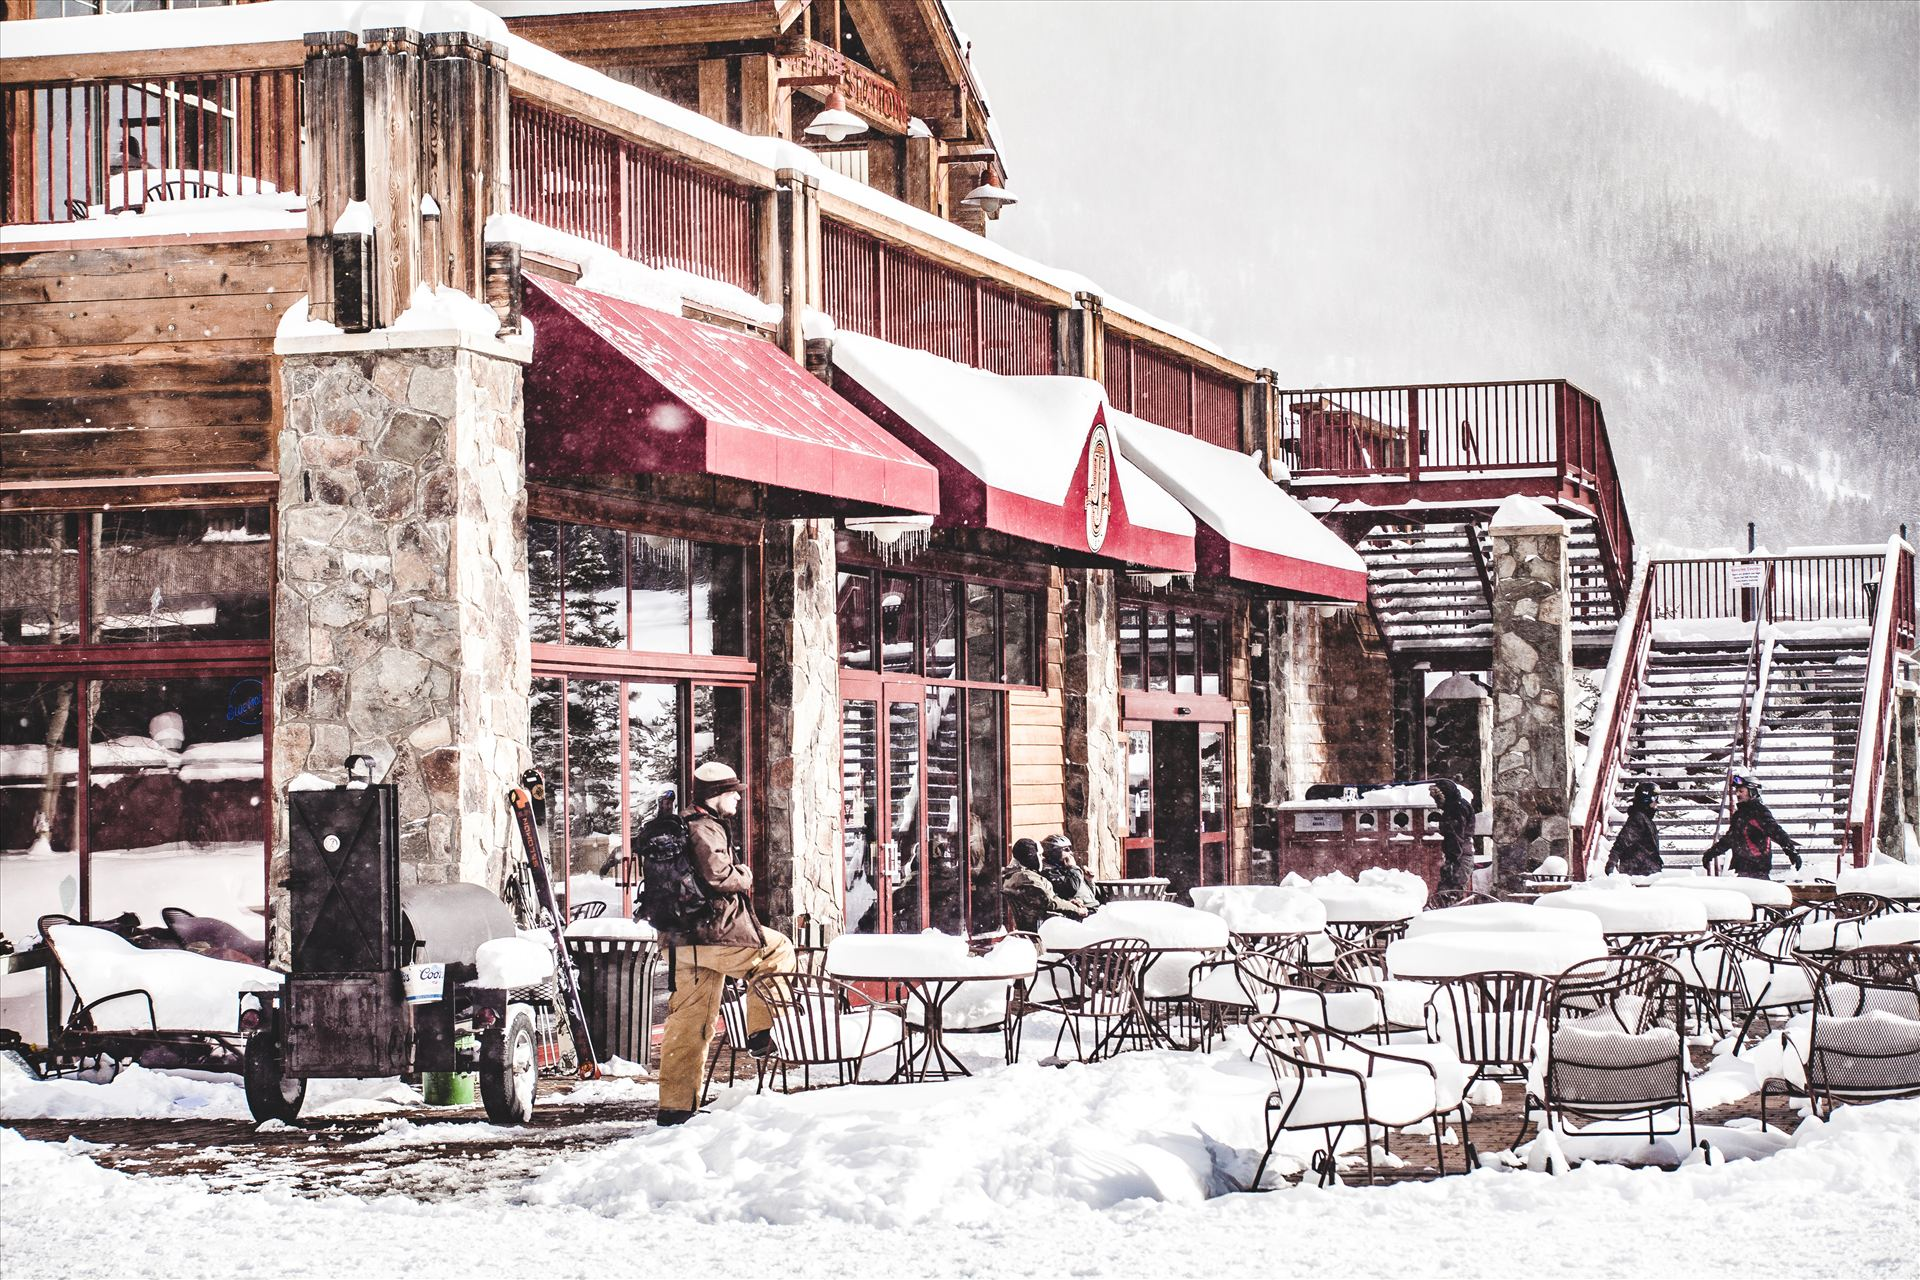 Copper Mountain - Taking a break from shredding at Copper Mountain, Colorado. by D Scott Smith